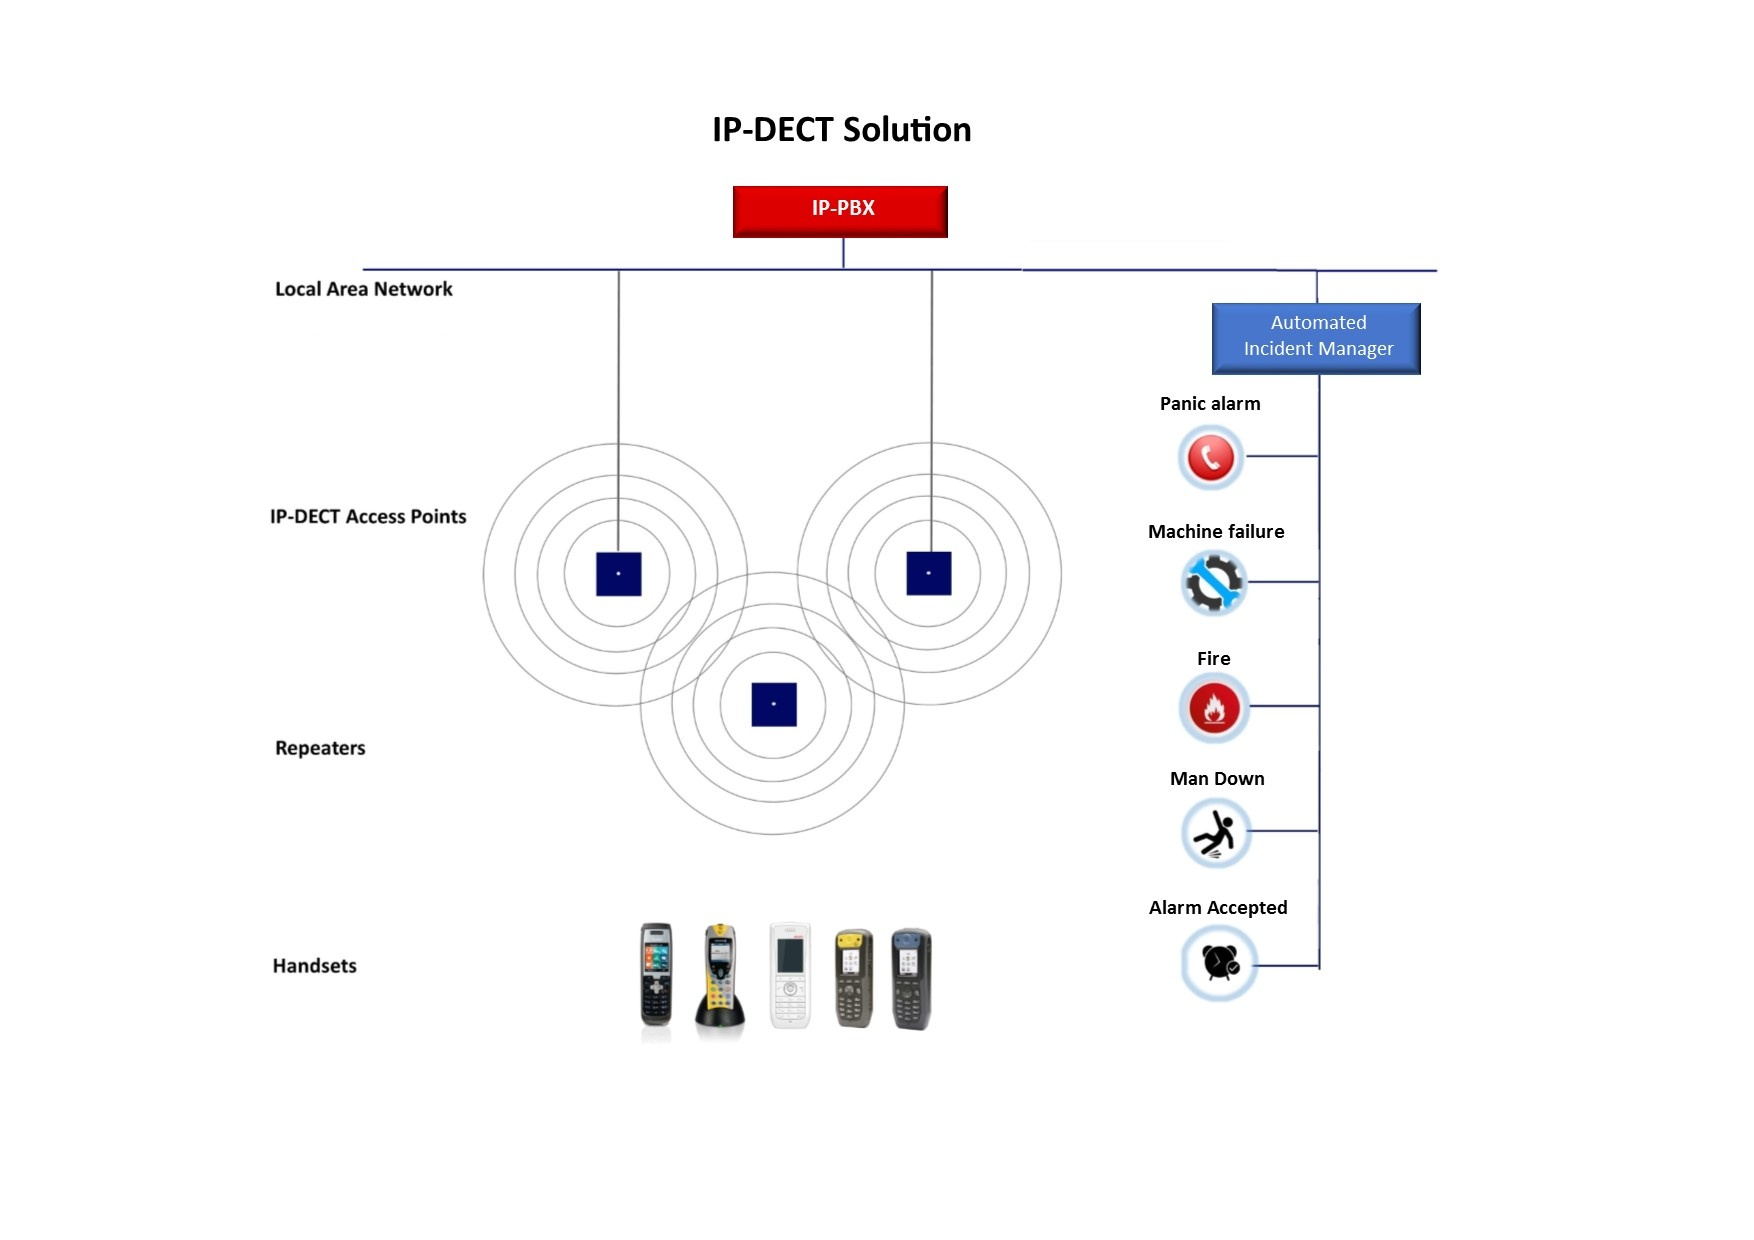 IP DECT Solution